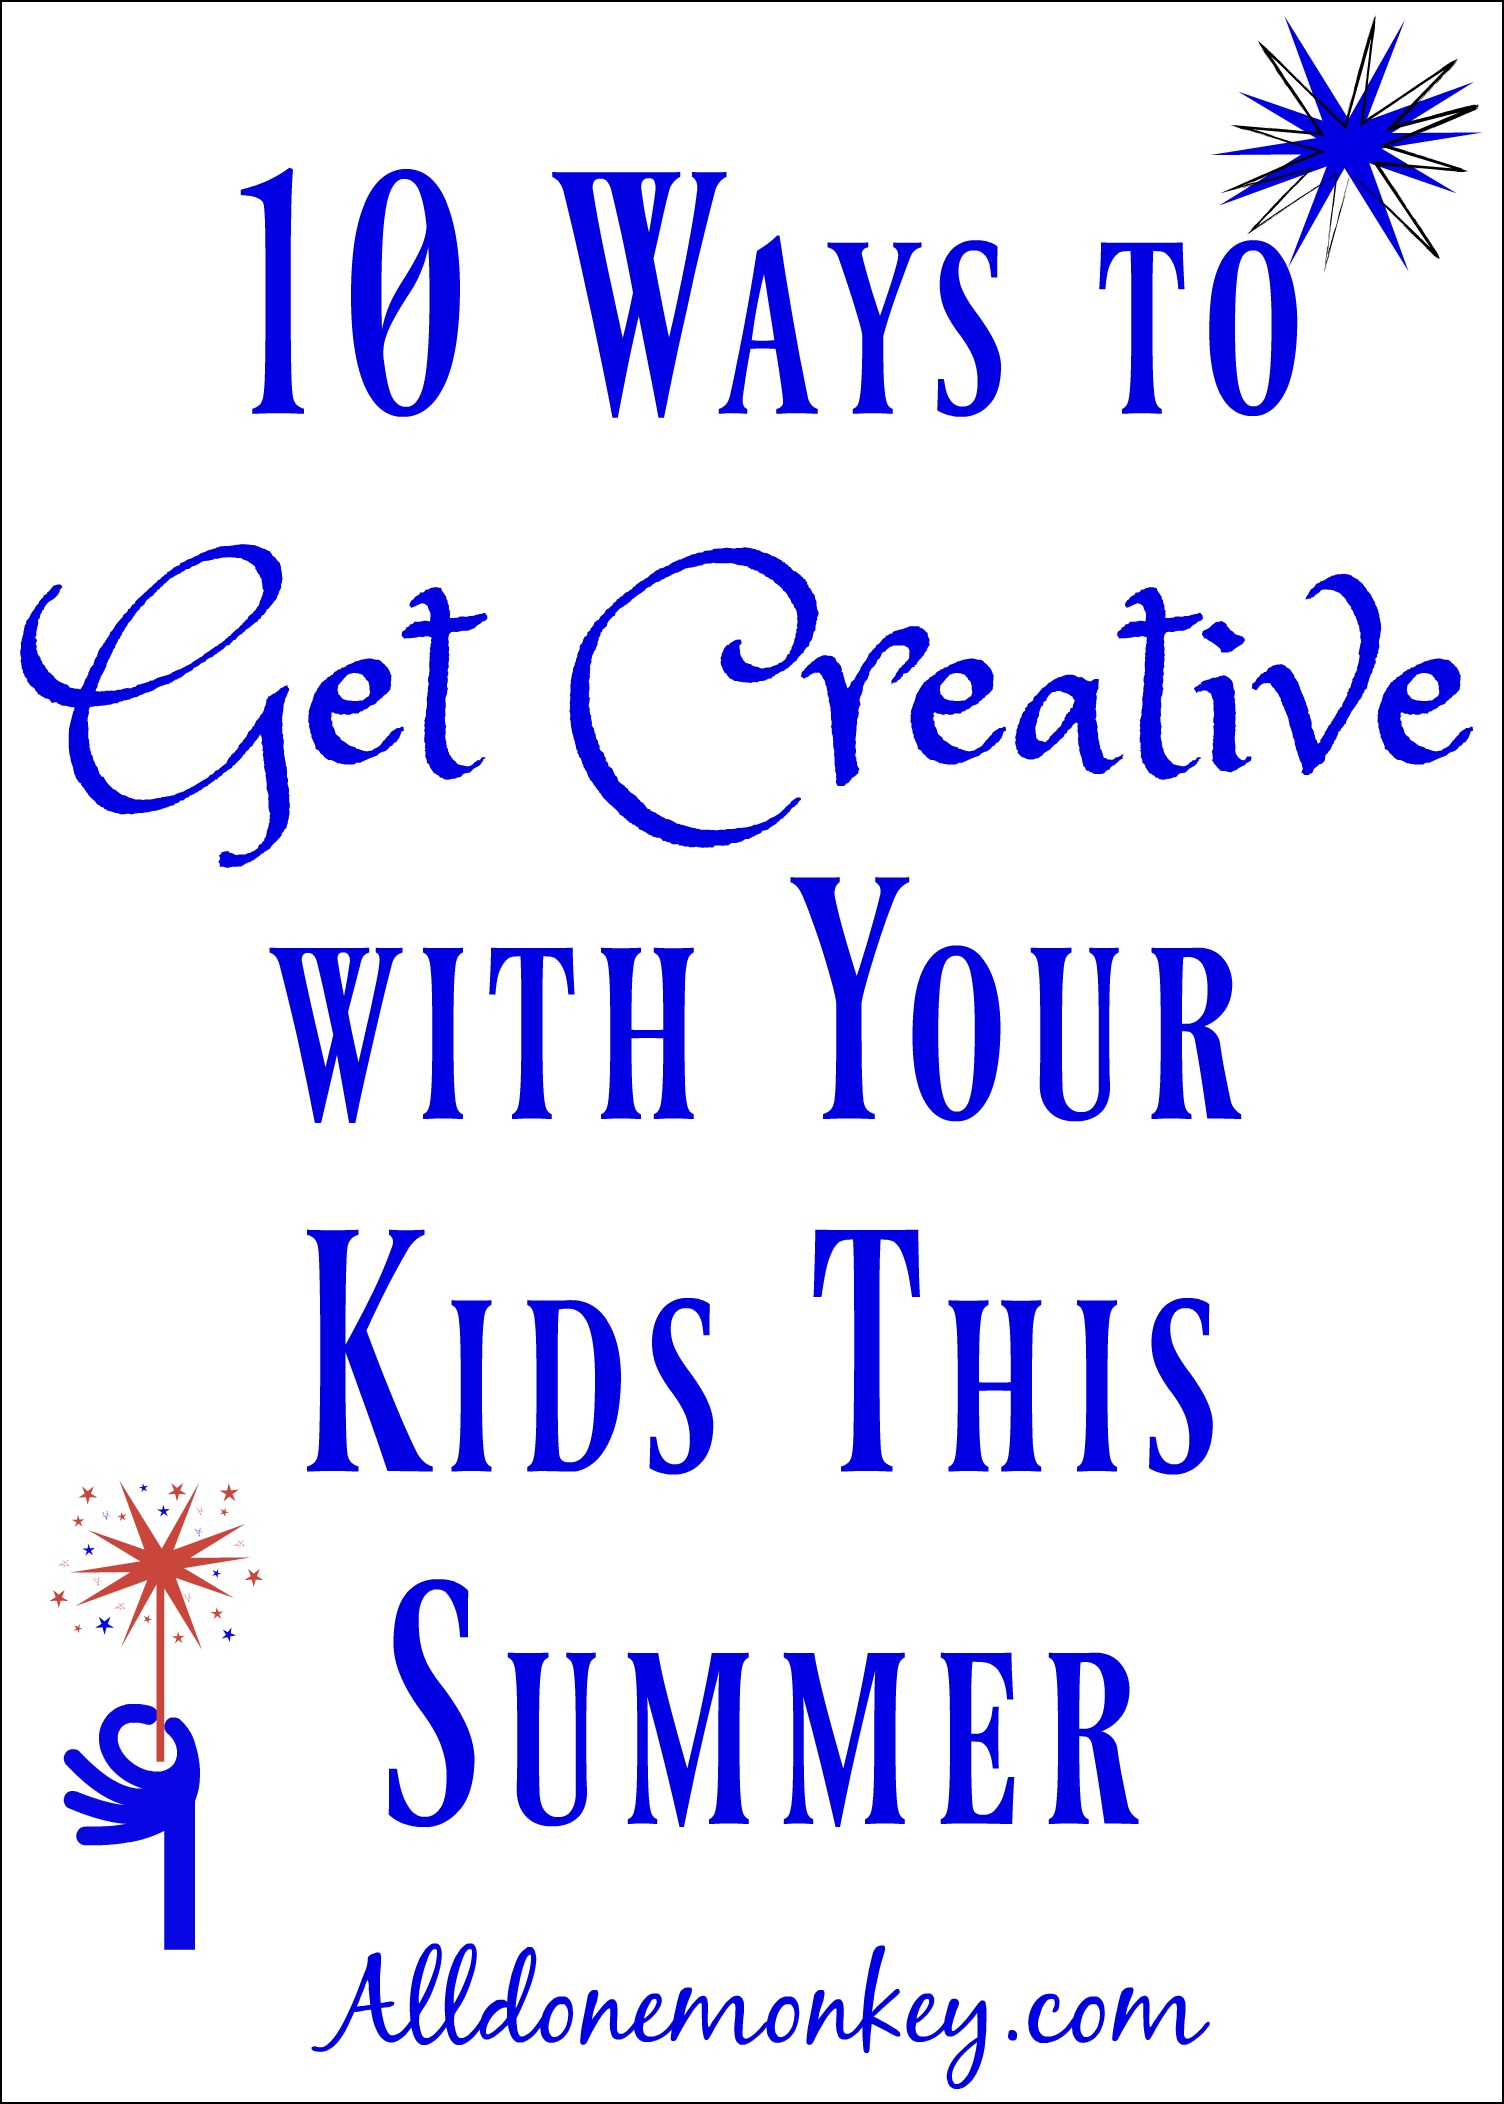 10 fun ways to get creative with your kids this summer